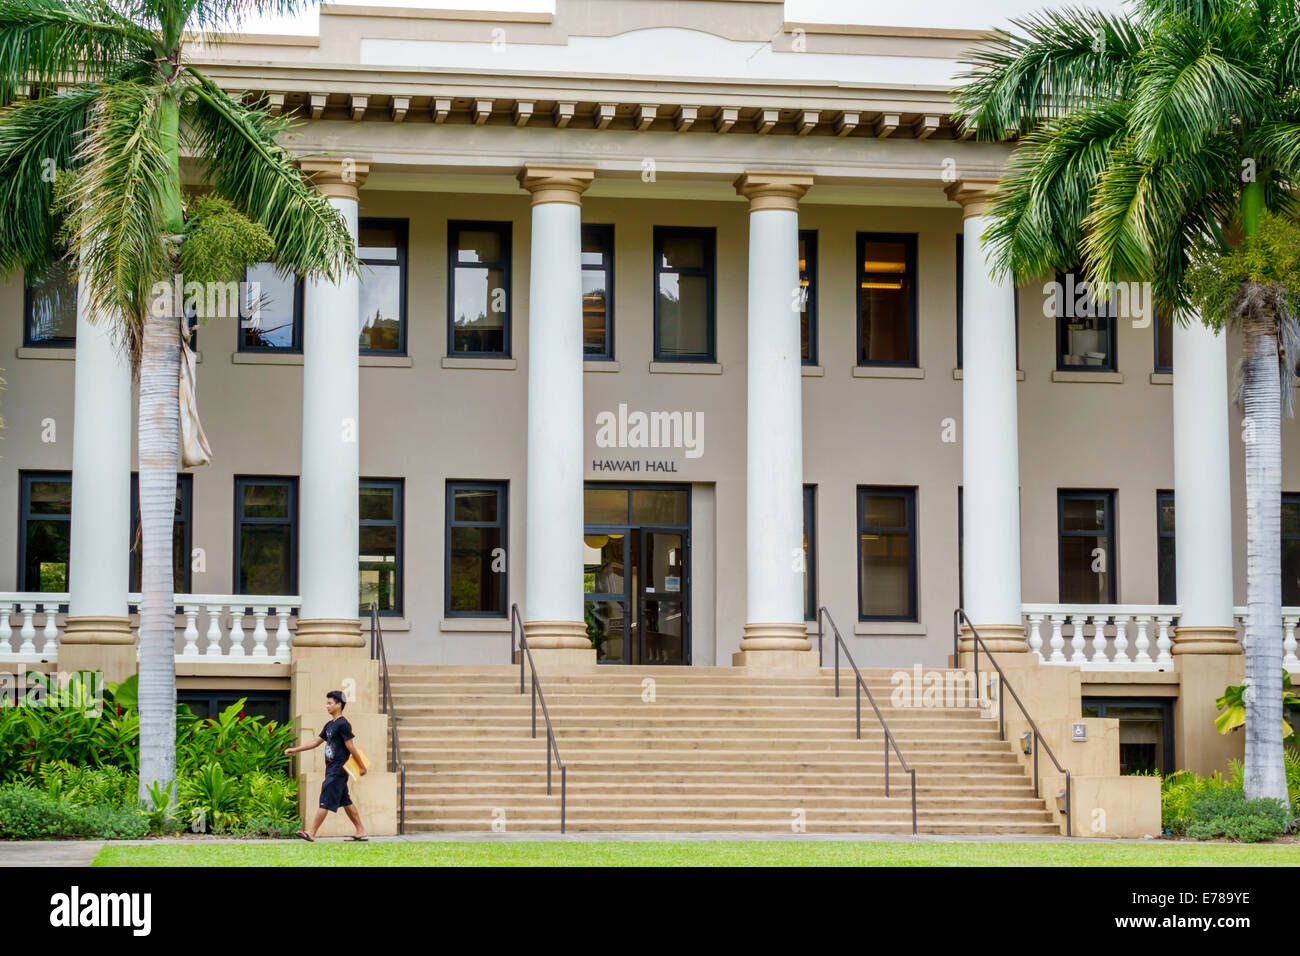 Honolulu Hawaii Hawaii Oahu University Of Hawaii In Manoa Campus Schule Bildung Hawaii Hall